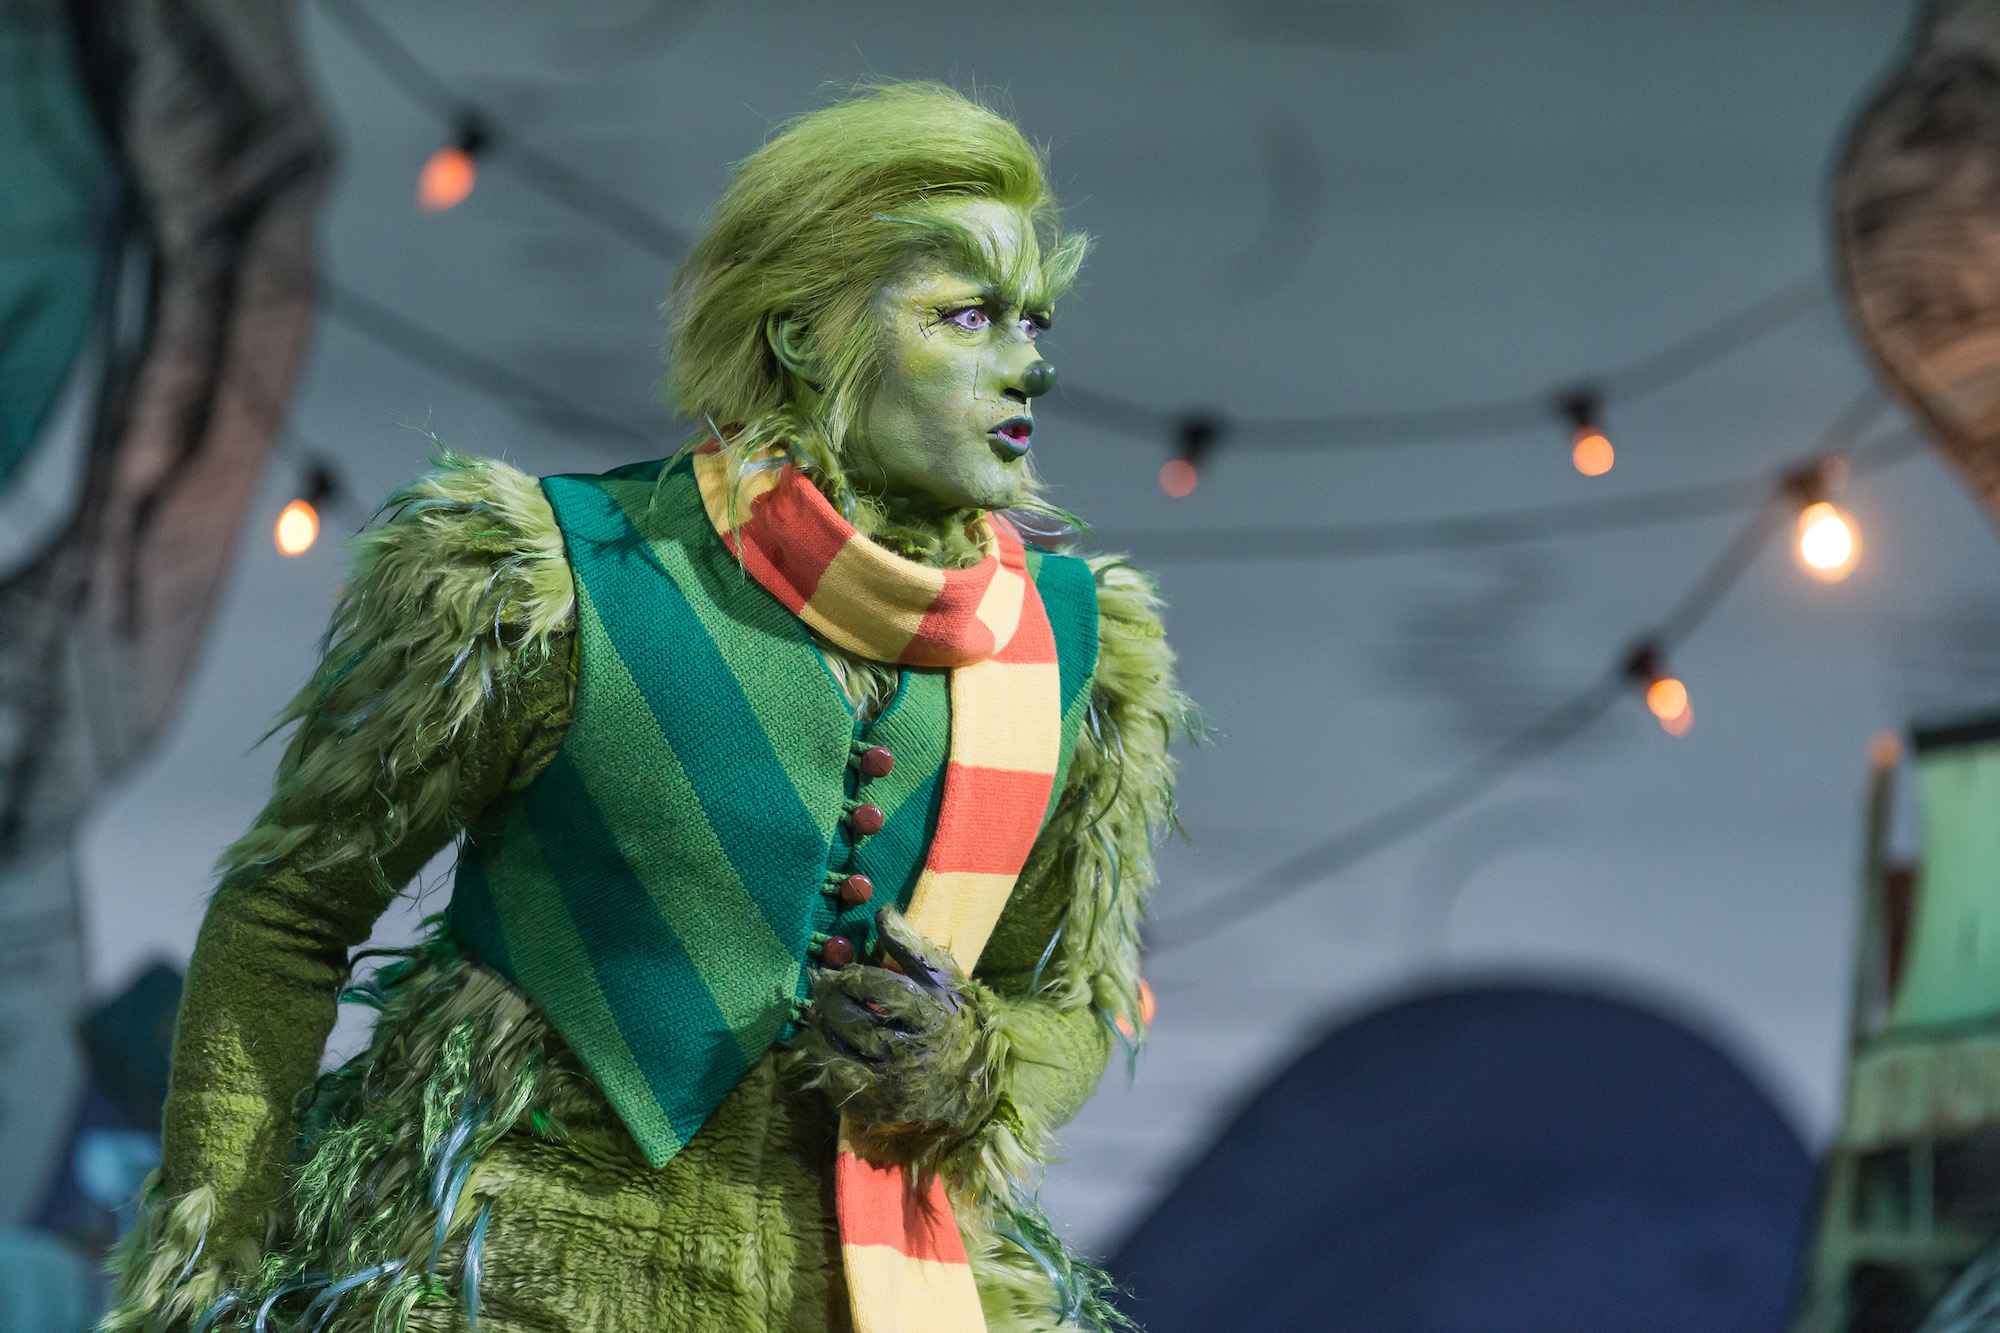 Matthew Morrison as The Grinch in 'DR. SUESS' THE GRINCH MUSICAL' on NBC